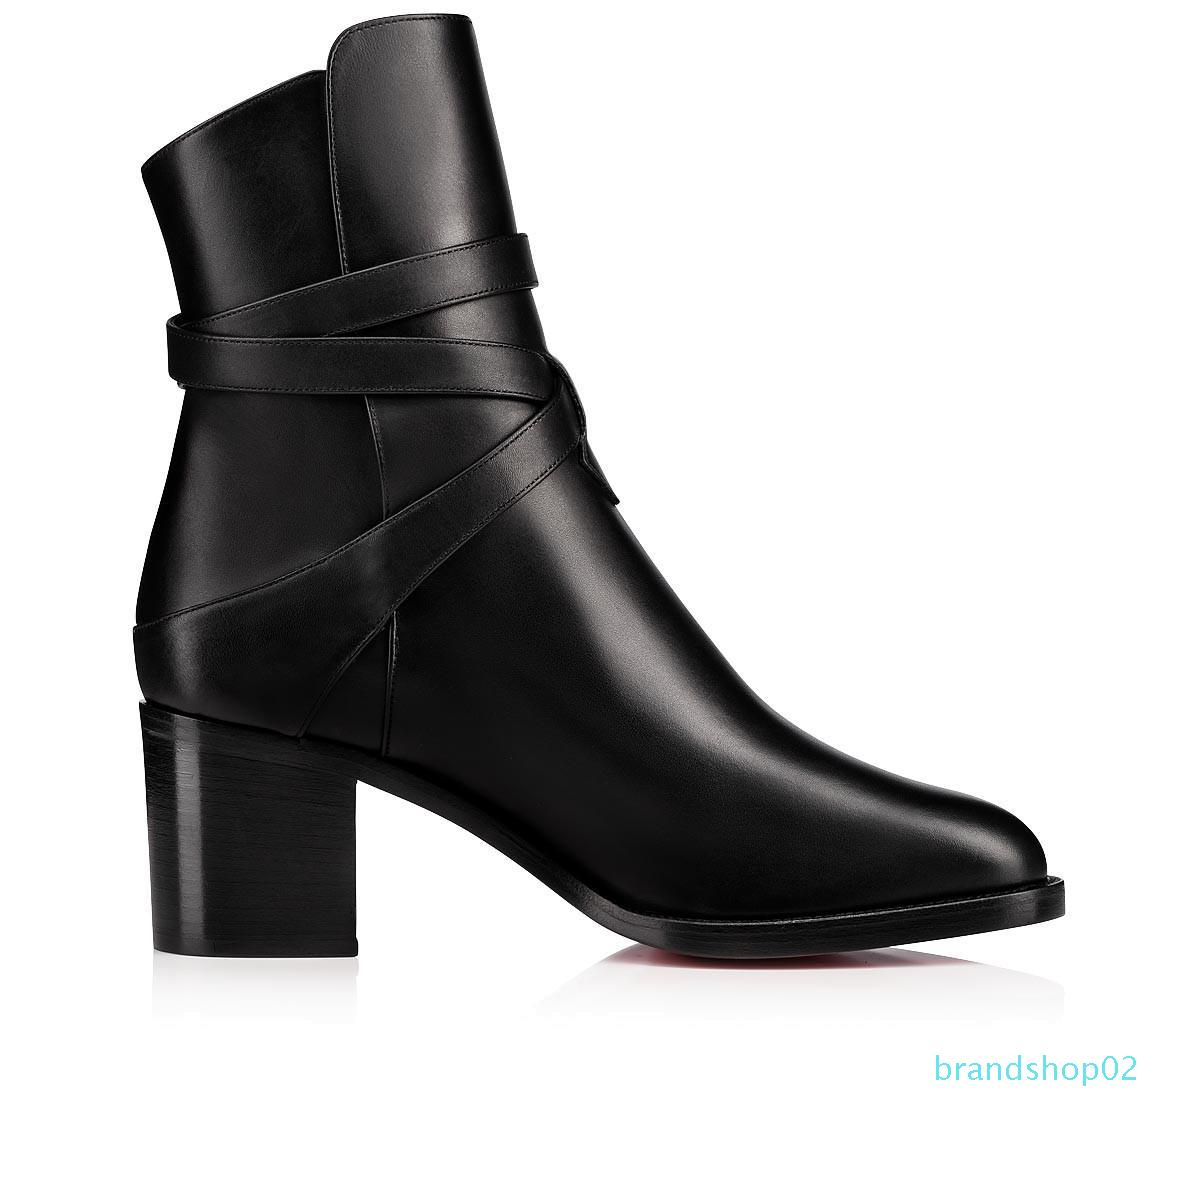 Ladys Boots Calfskin Genuine Leather